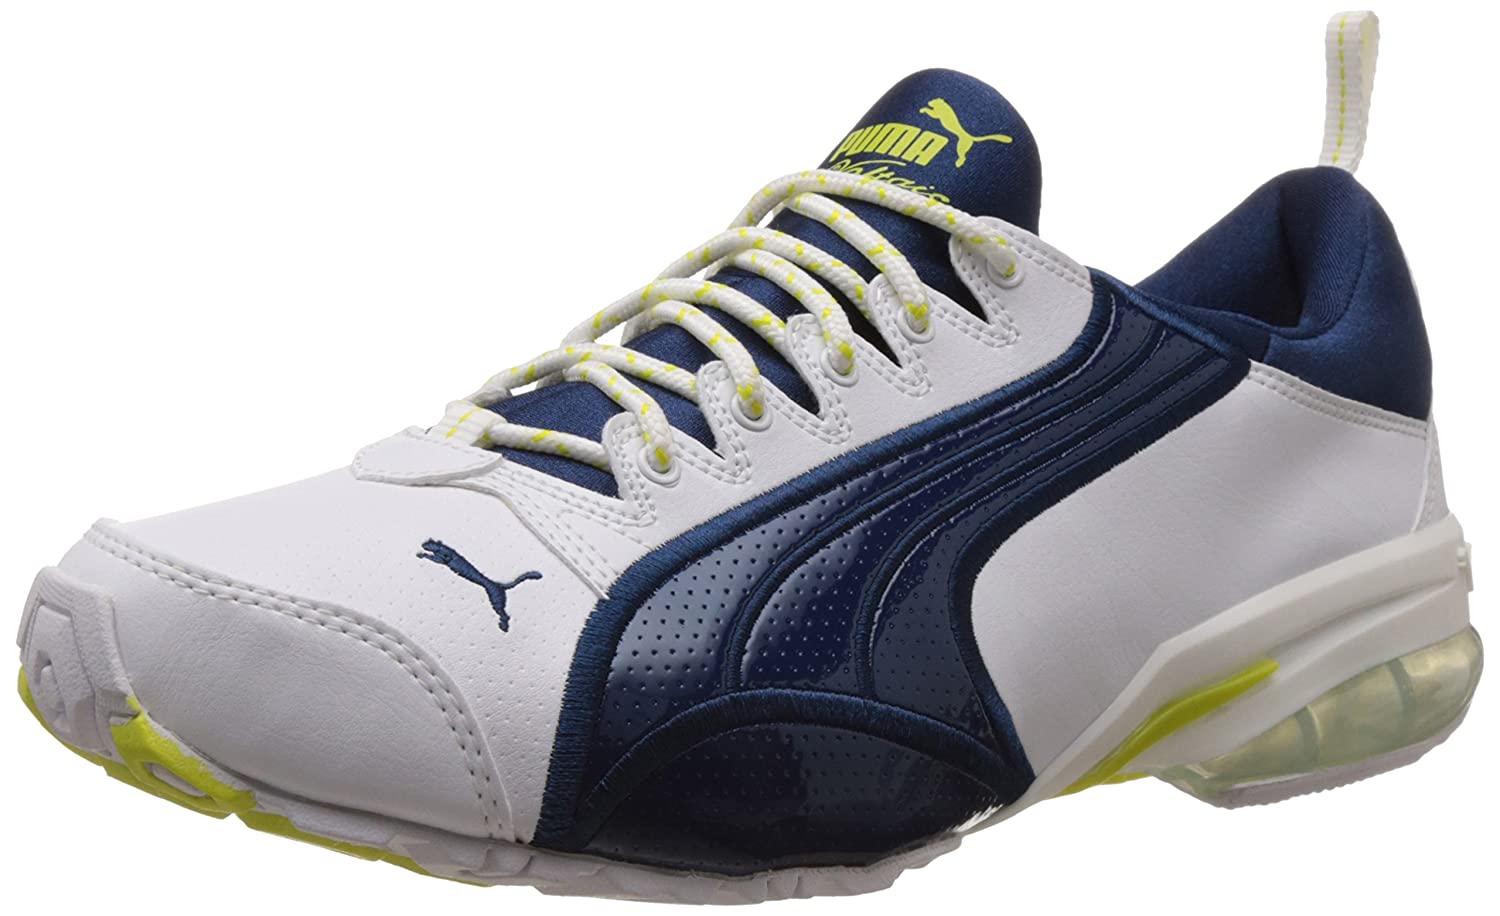 Puma Men's Voltaic II DP White, Poseidon and Sulphur Spring Mesh Running  Shoes - 8 UK/India (42 EU): Buy Online at Low Prices in India - Amazon.in